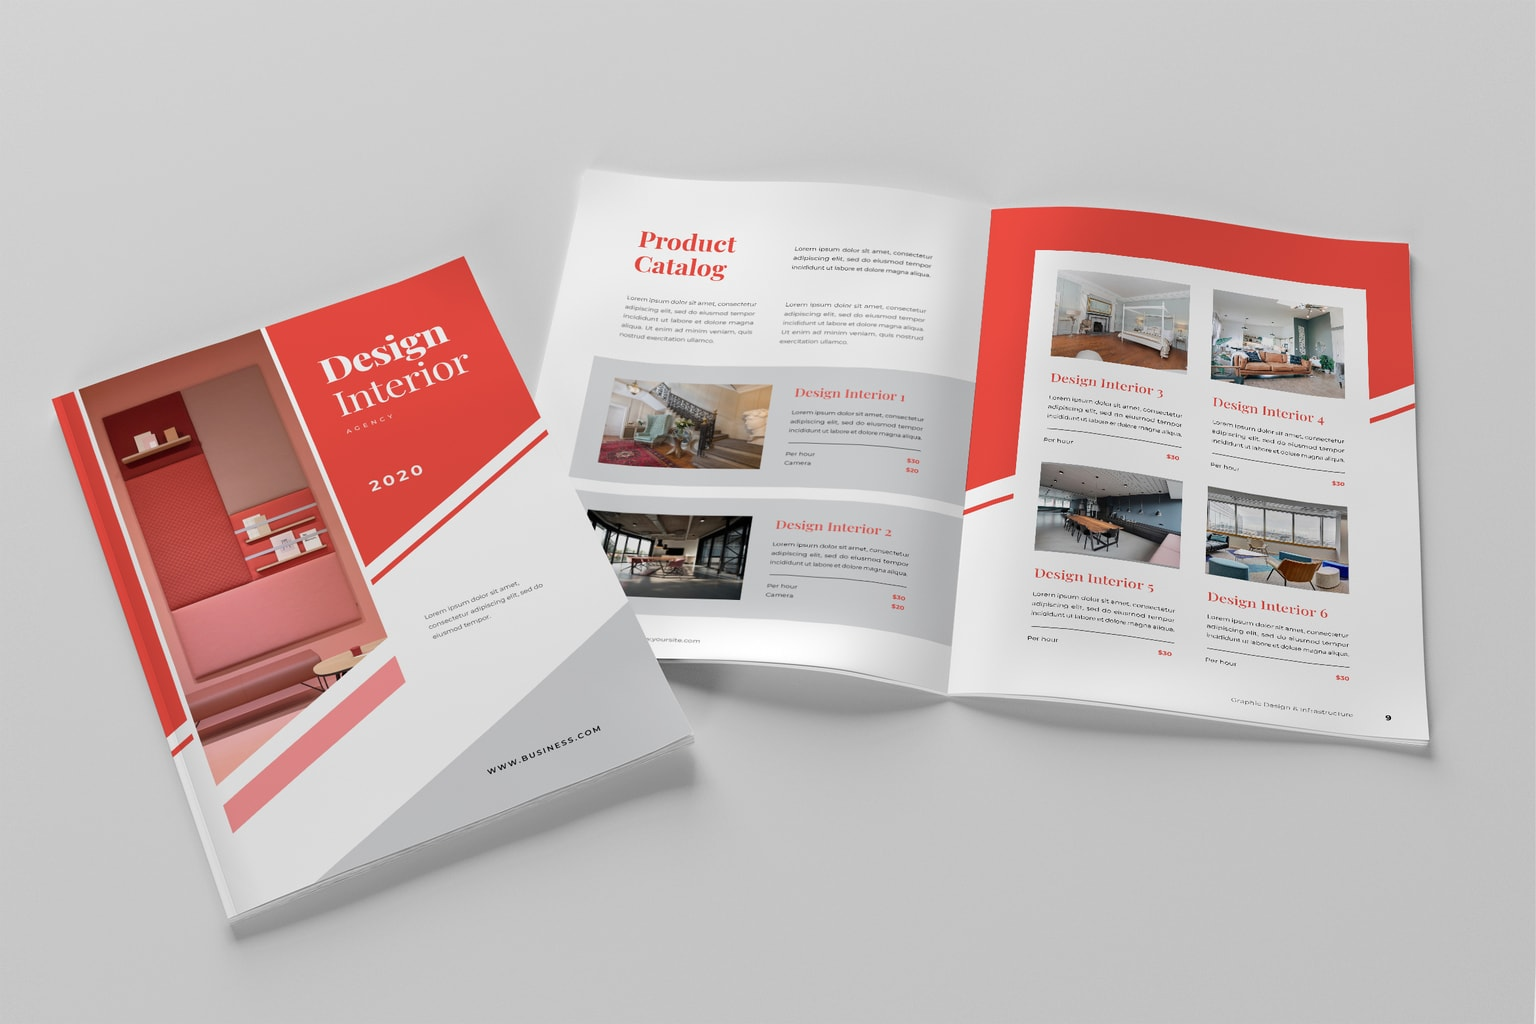 brochure special design interior 3